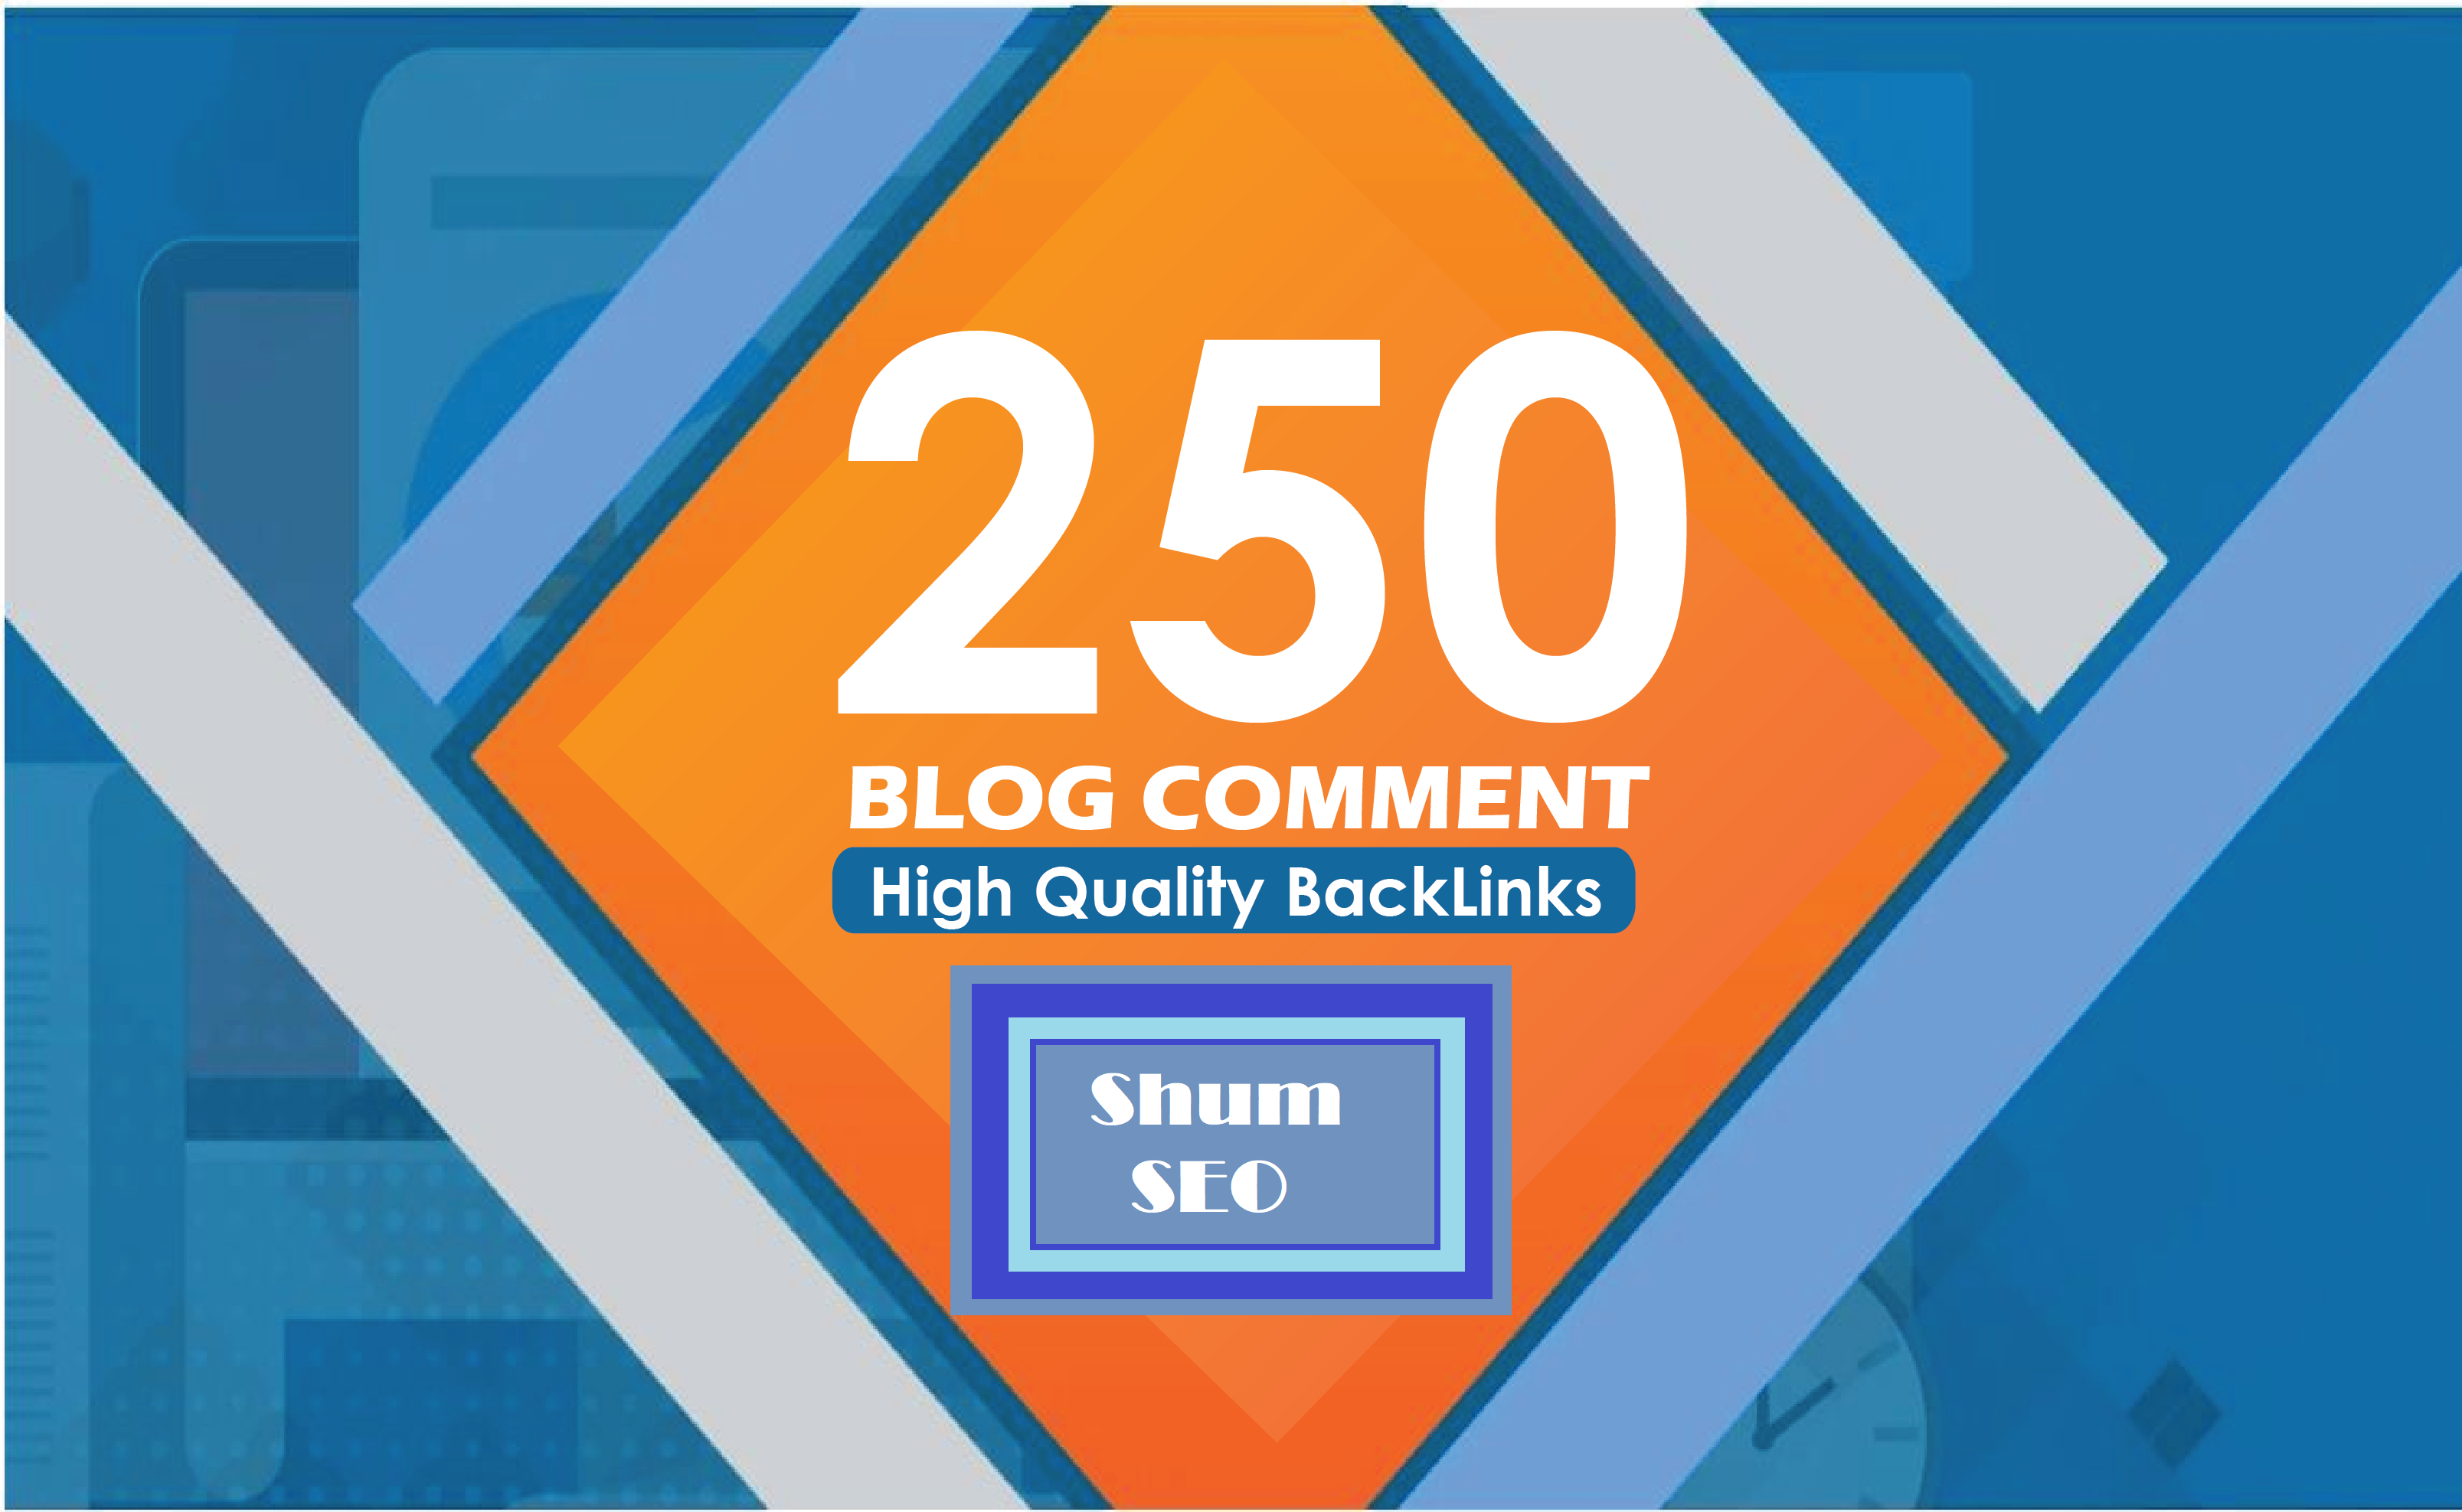 provide 250 blog comments high quality backlinks